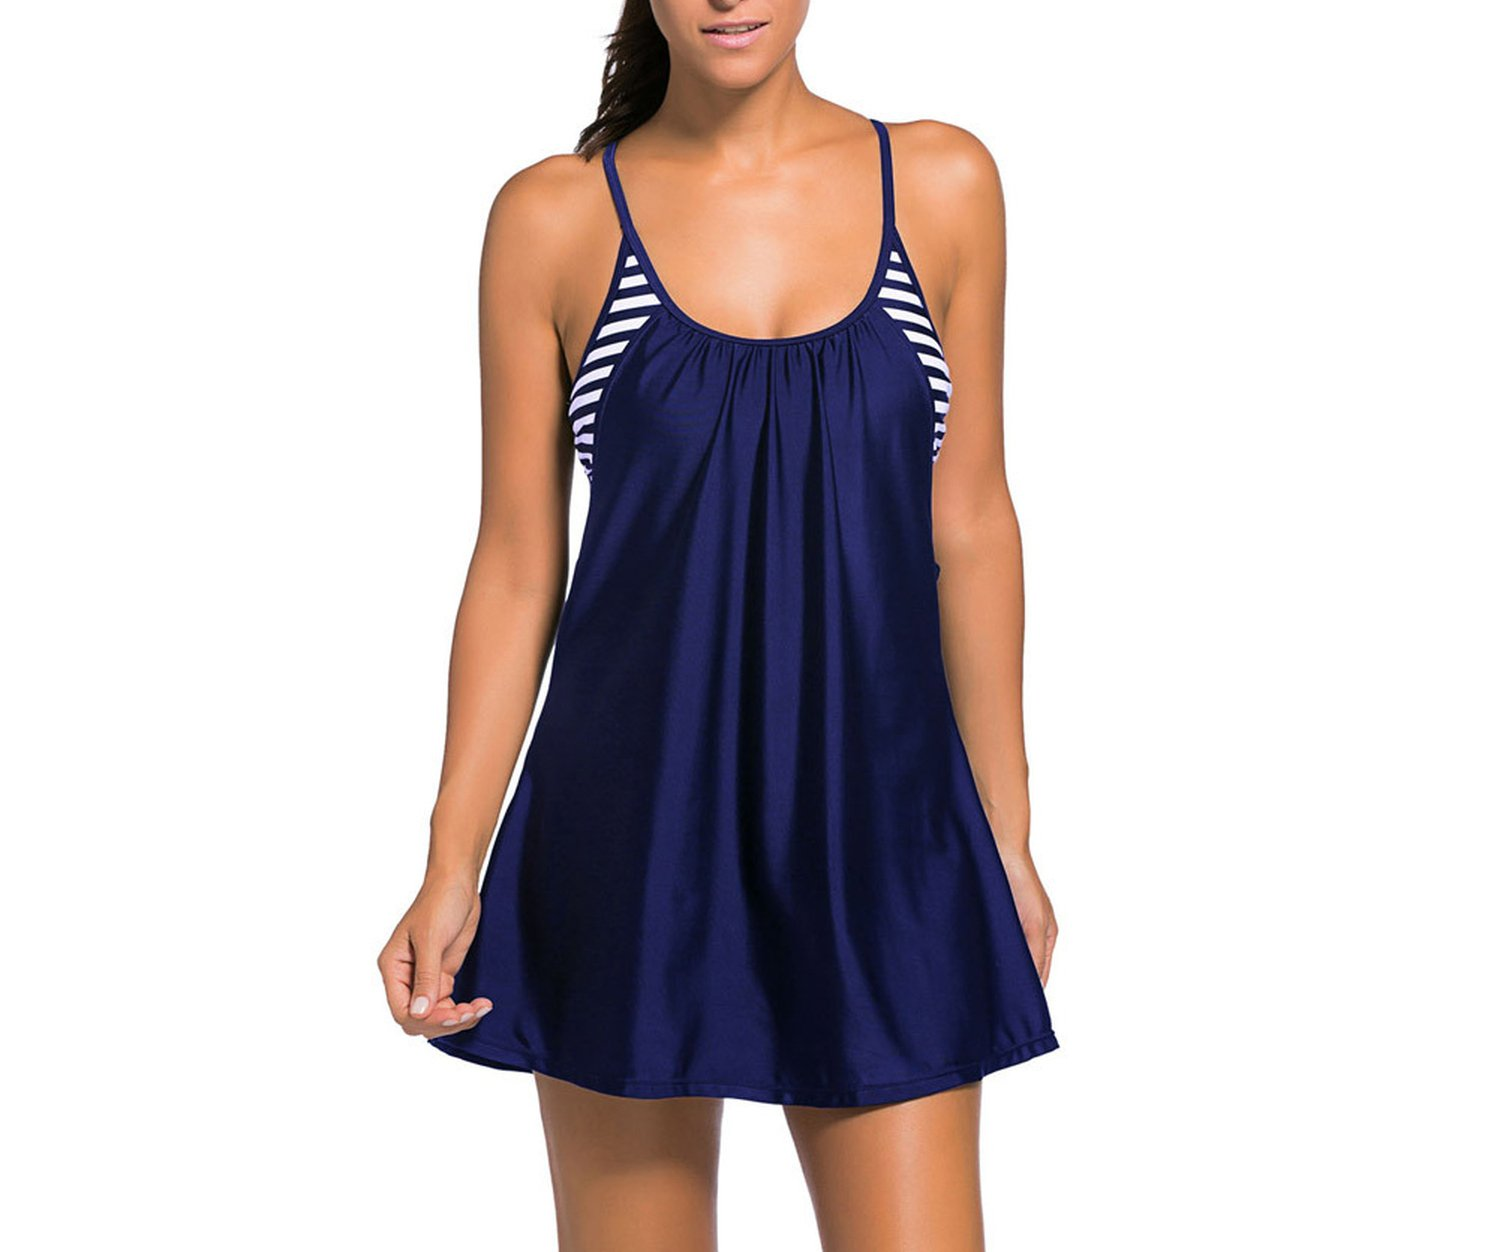 Noon-Sunshine Large Size Unique Style Seamless Swimsuit Siamese Skirt,Navy Blue,L